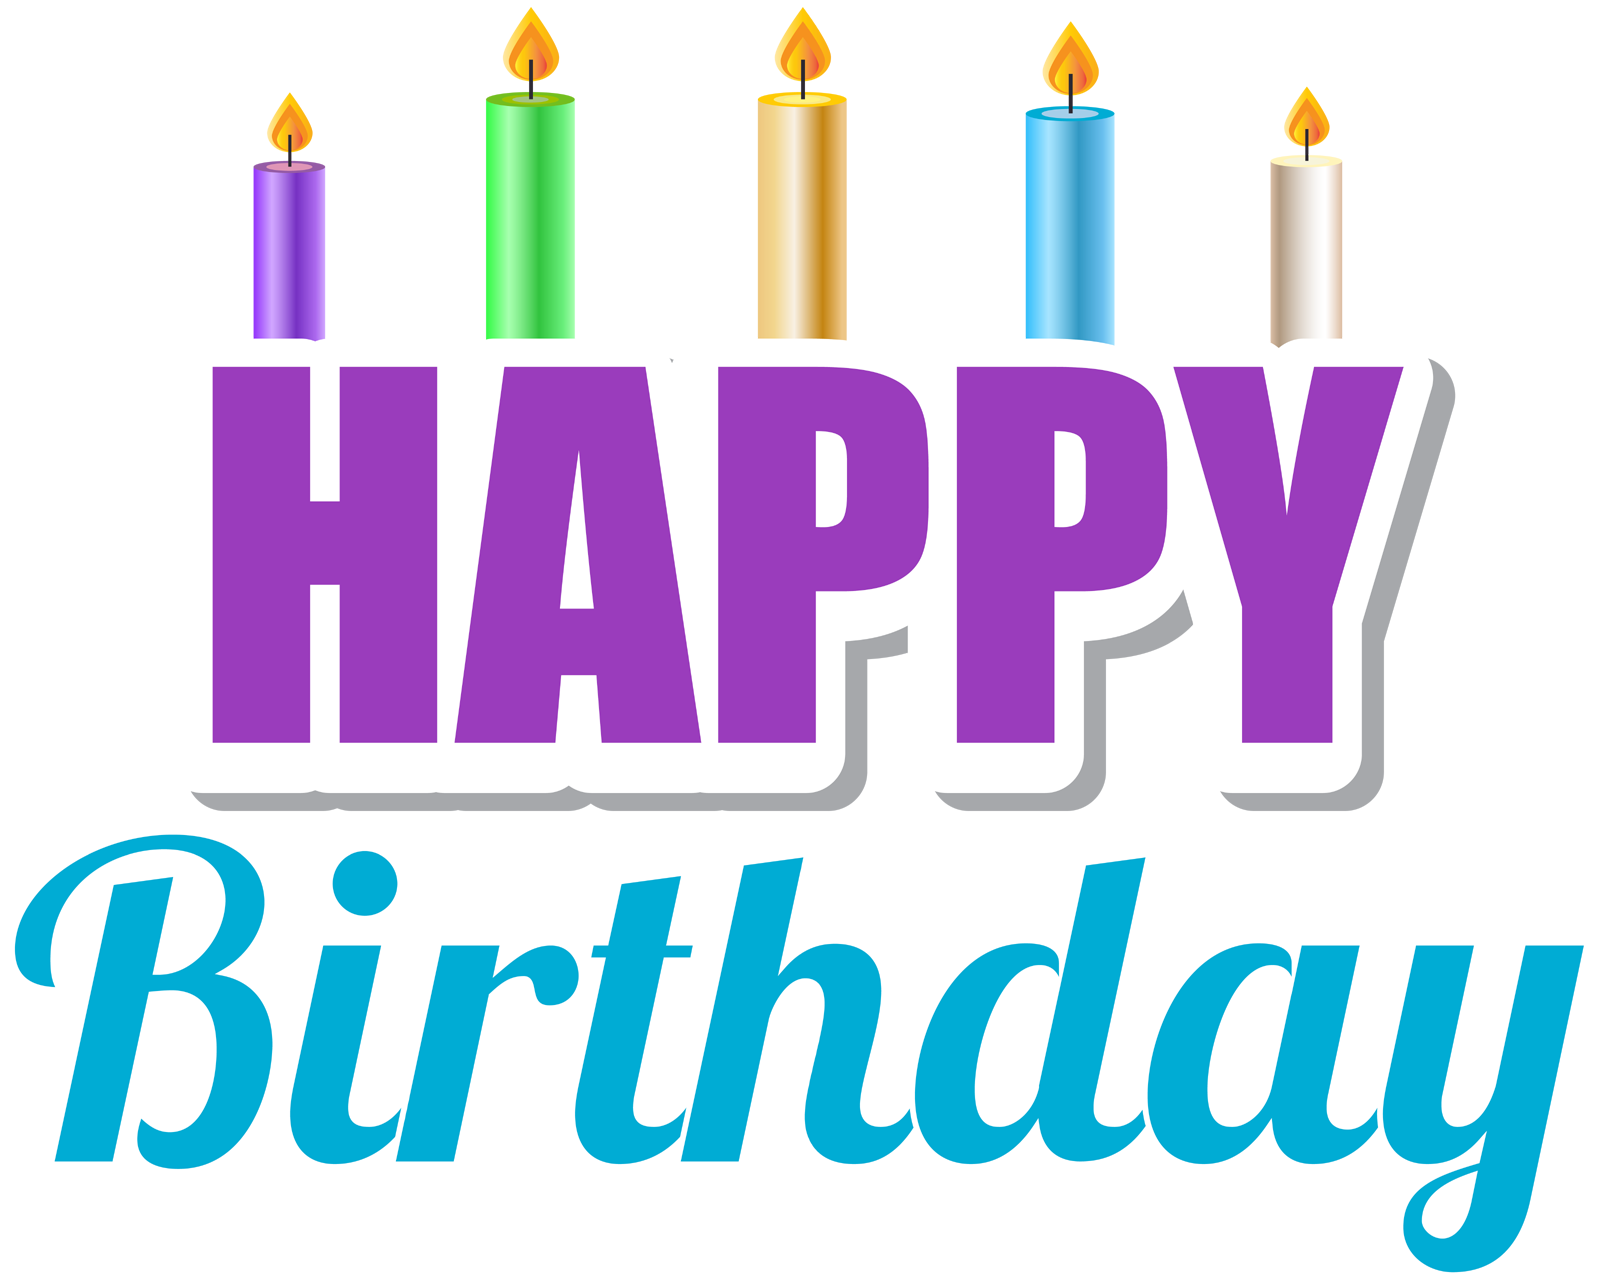 Happy Birthday Candles Png Design Elements Free With Image Library